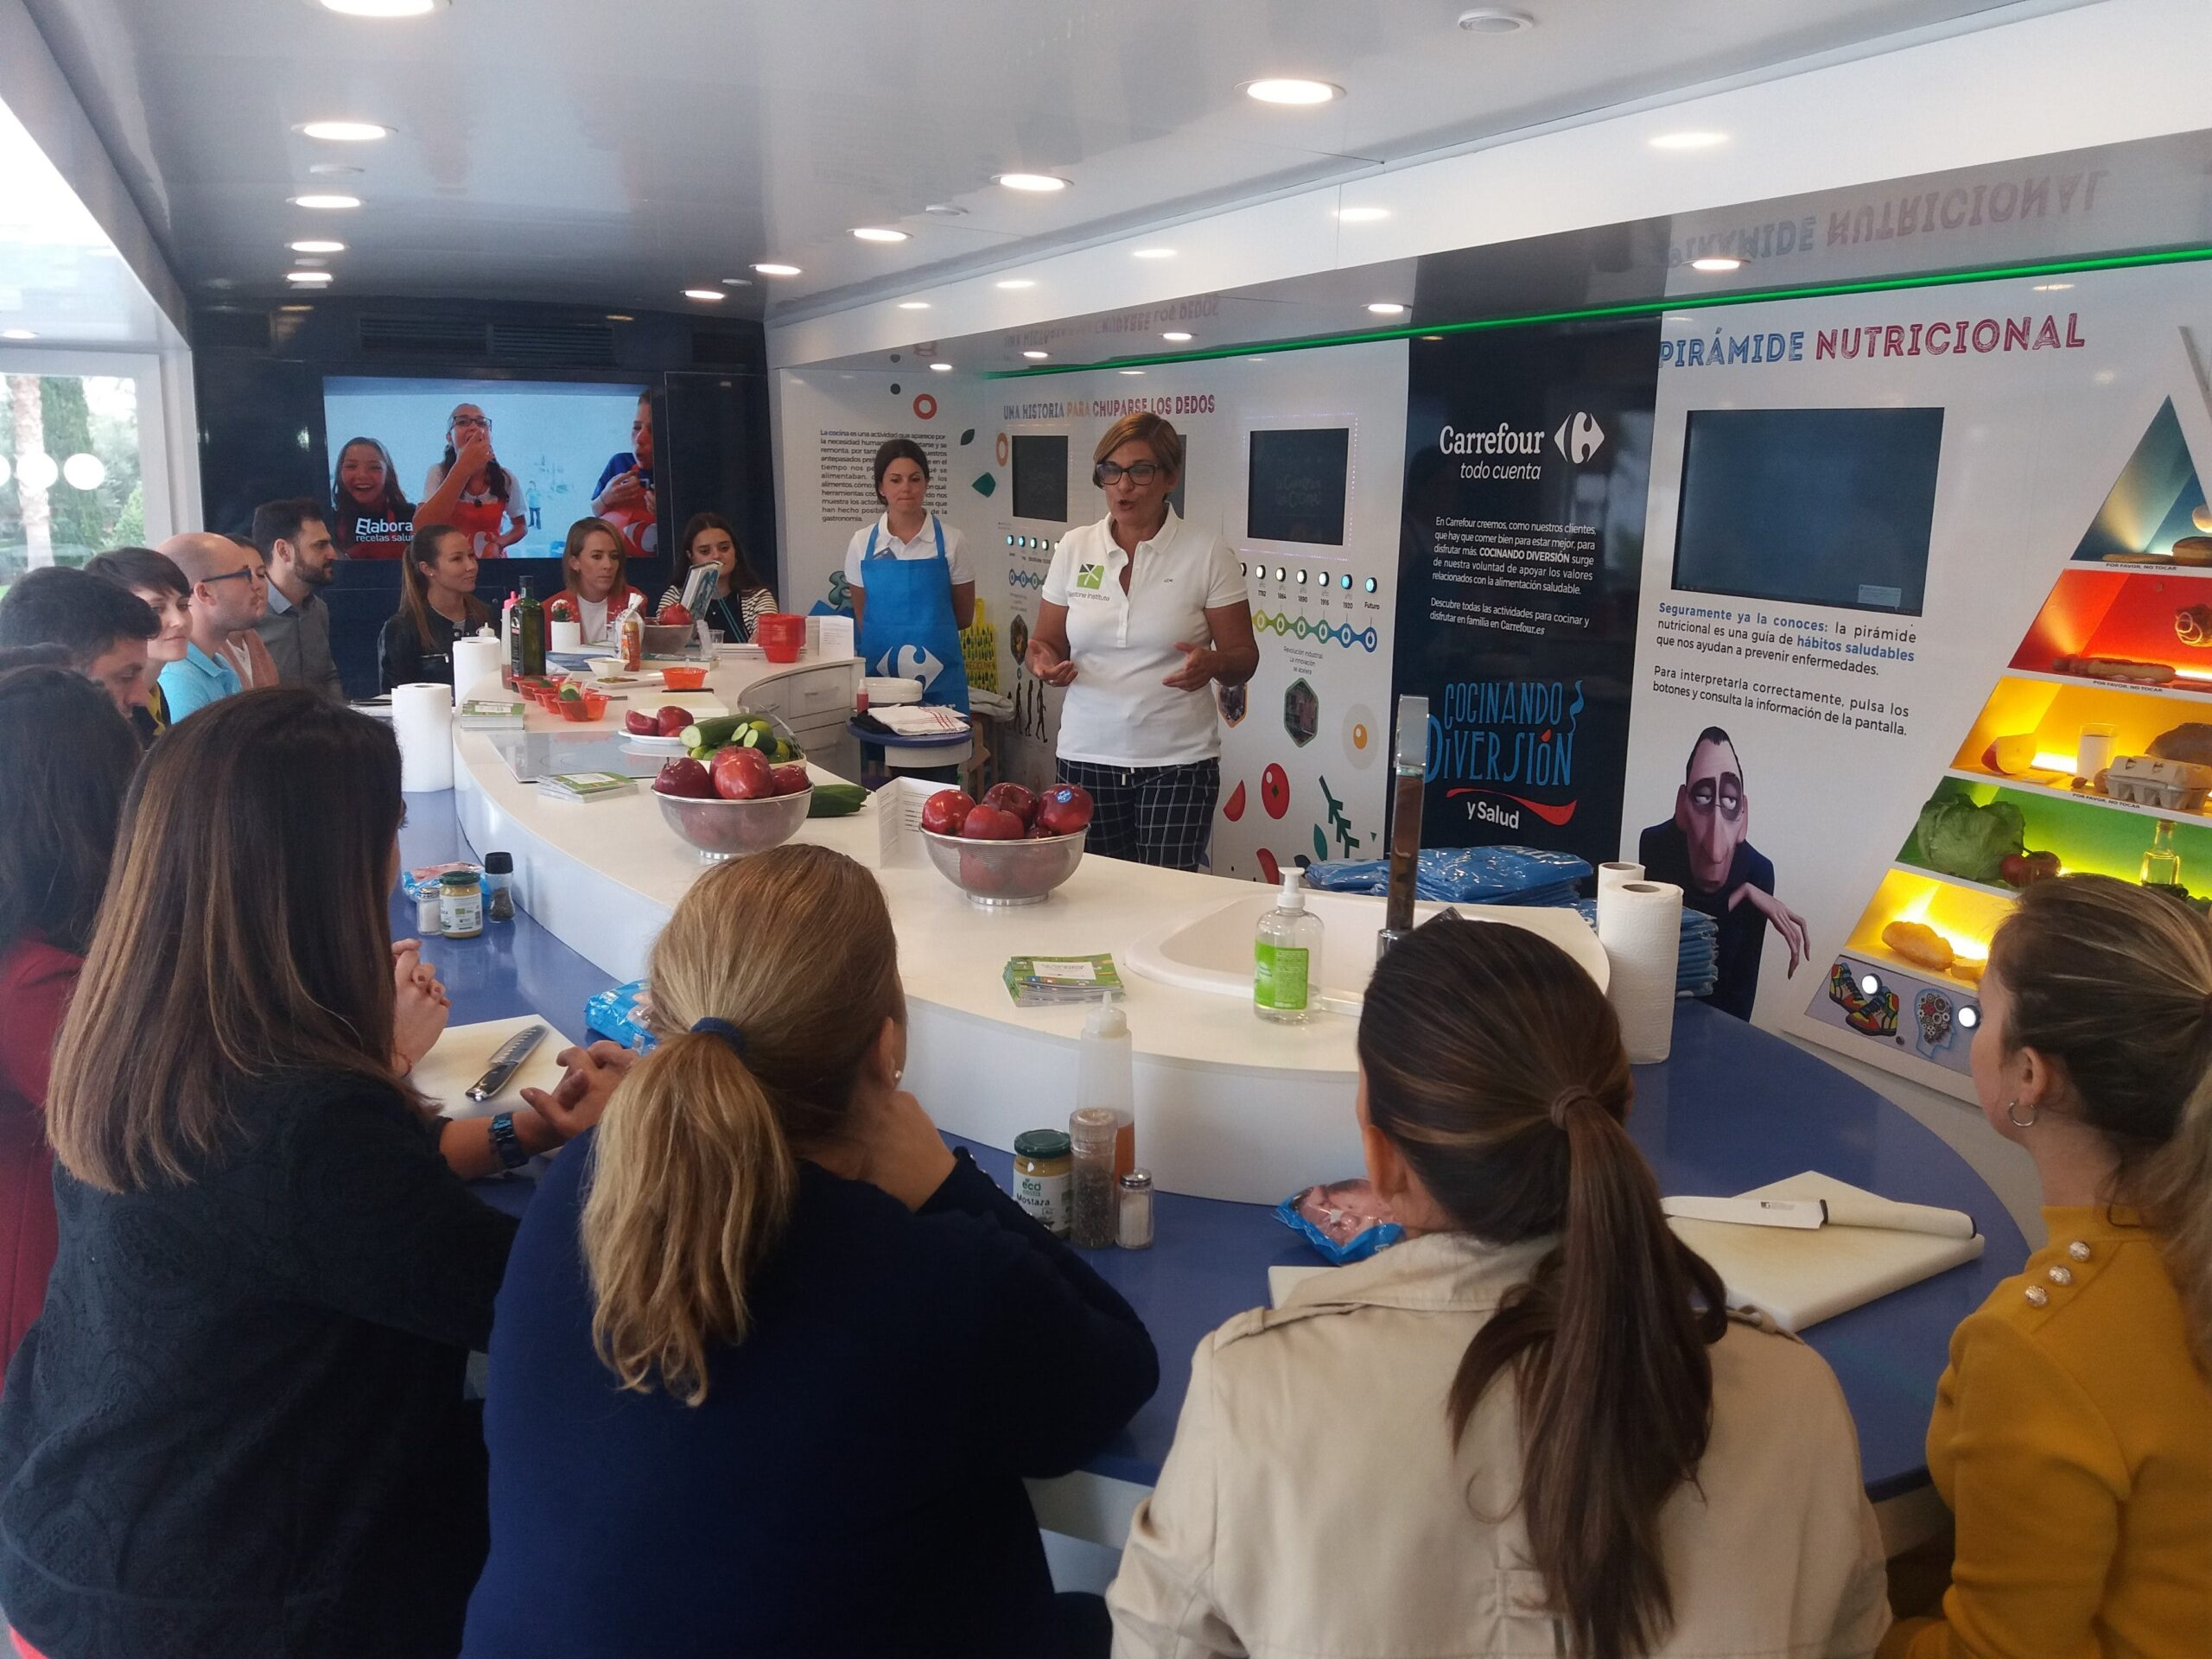 Image of InstitutoSilestone CaravanadelaSalud en Cosentino 6 1 1 scaled in Cosentino promotes good nutrition and food safety - Cosentino